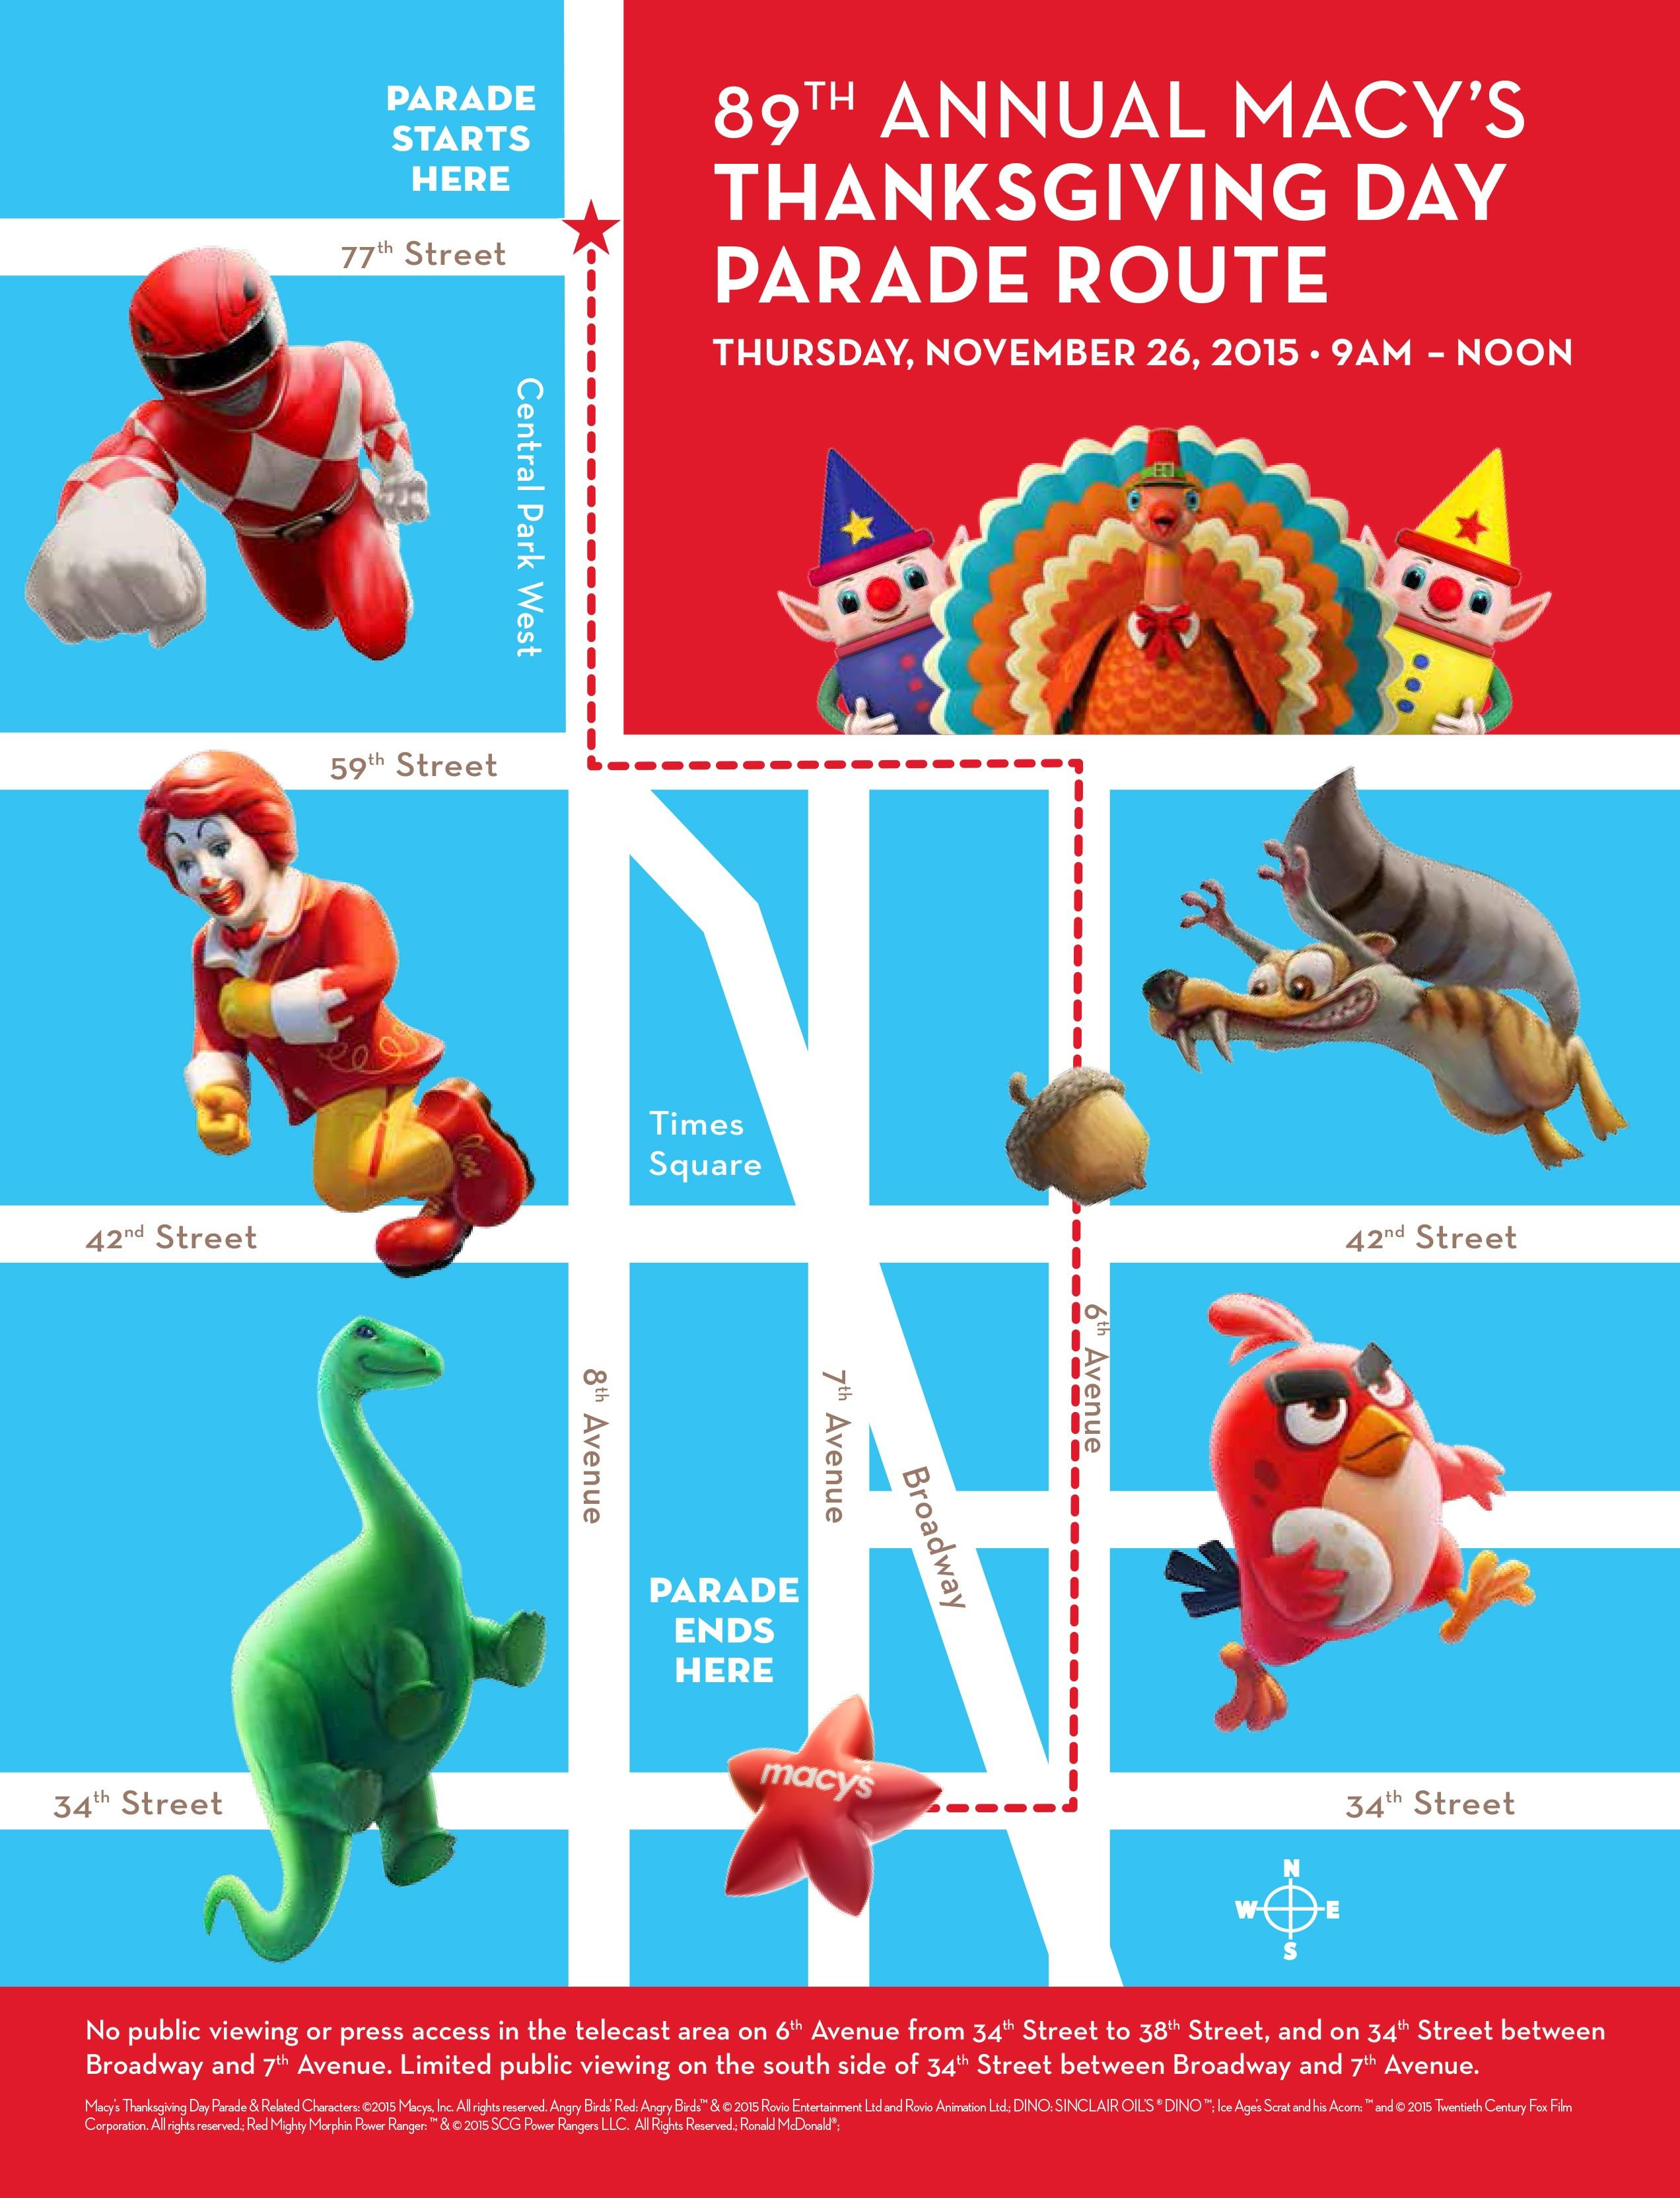 2015-Macys-Thanksgiving-Day-Parade-route-map